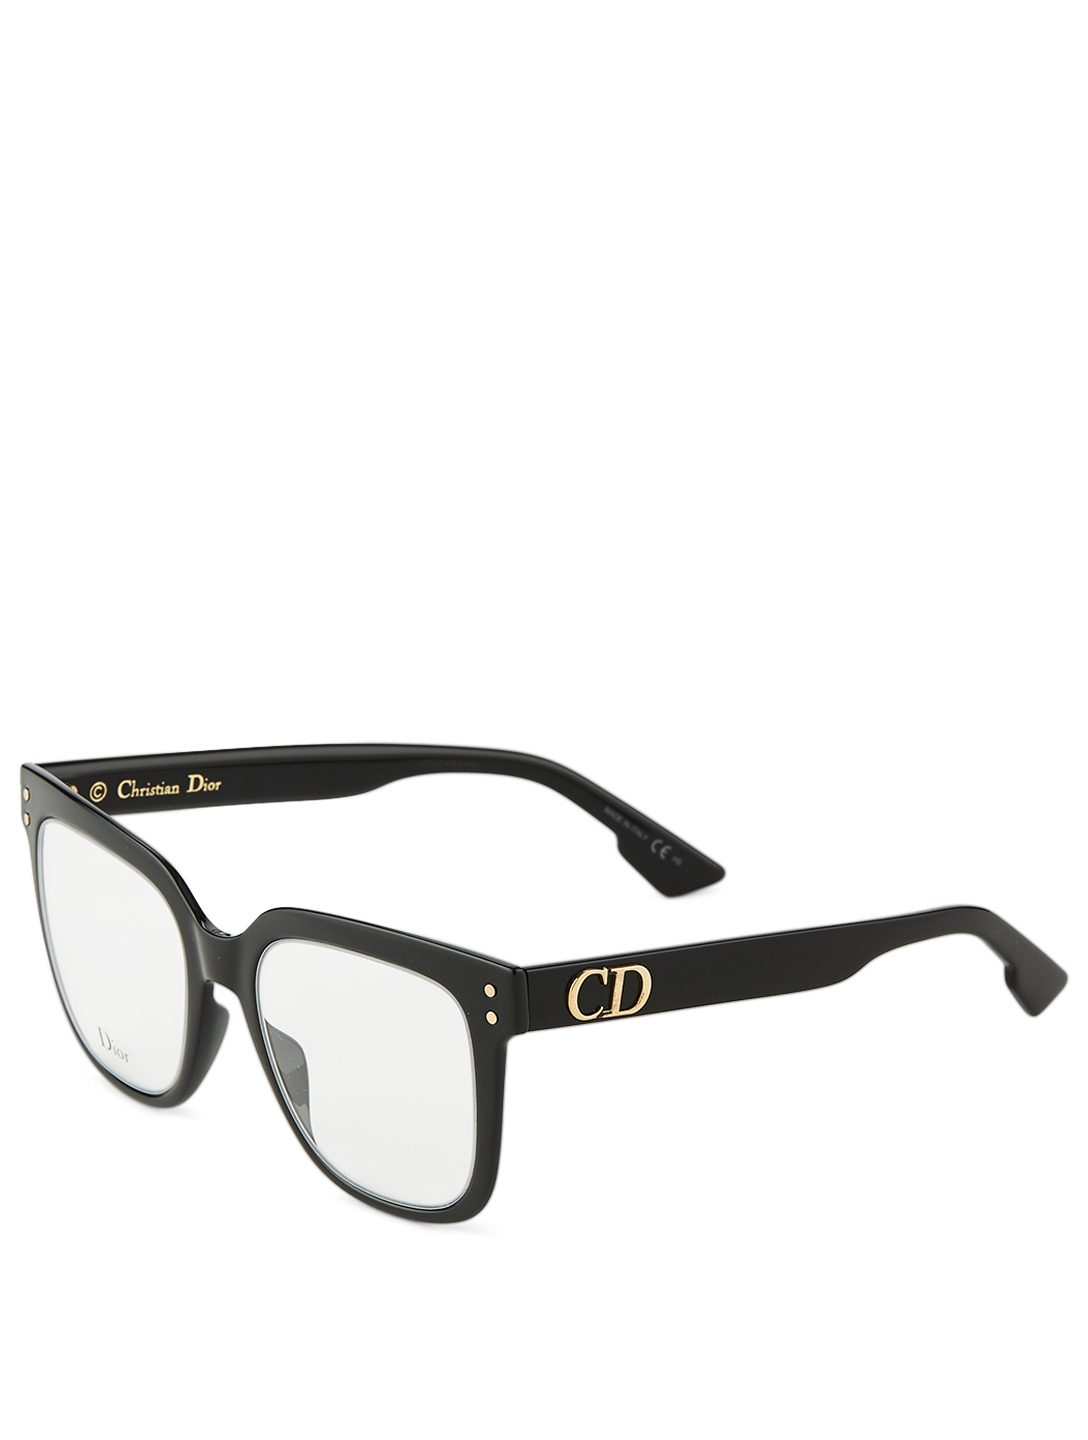 DIOR DiorCD1 Rectangular Optical Glasses Women's Black